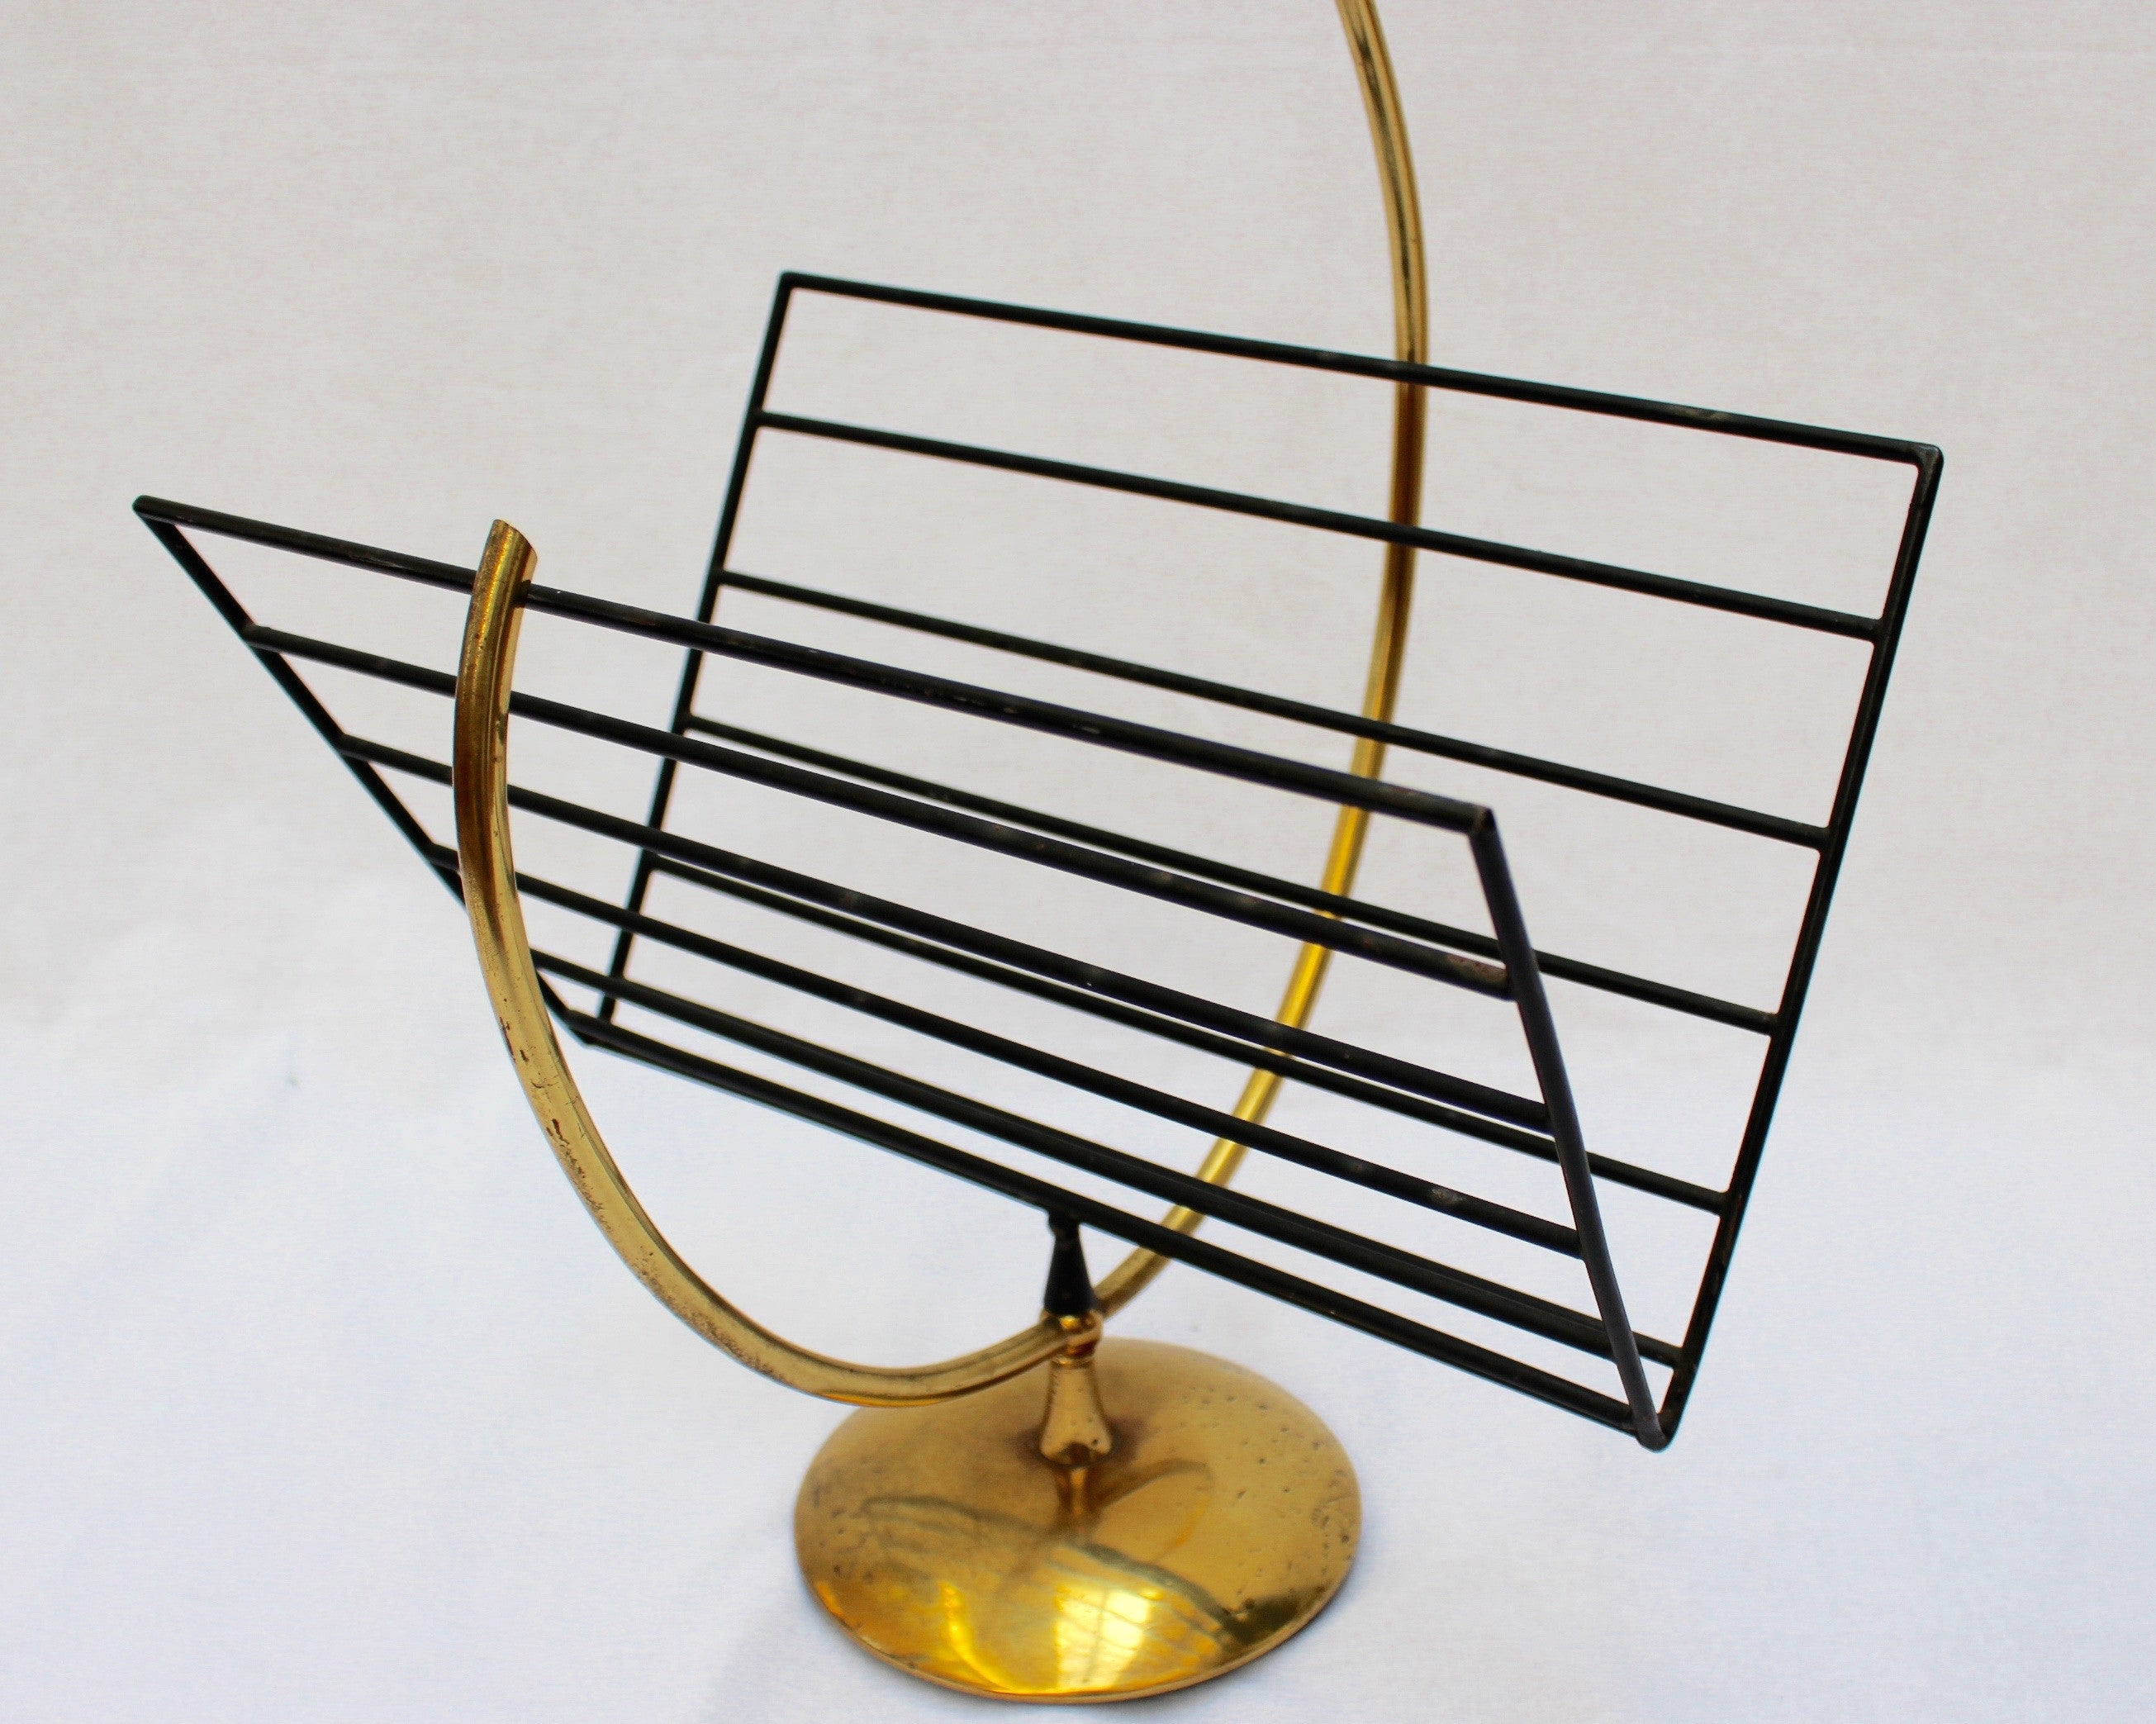 Music Note-Shaped Italian Brass Magazine Stand (c. 1950s)